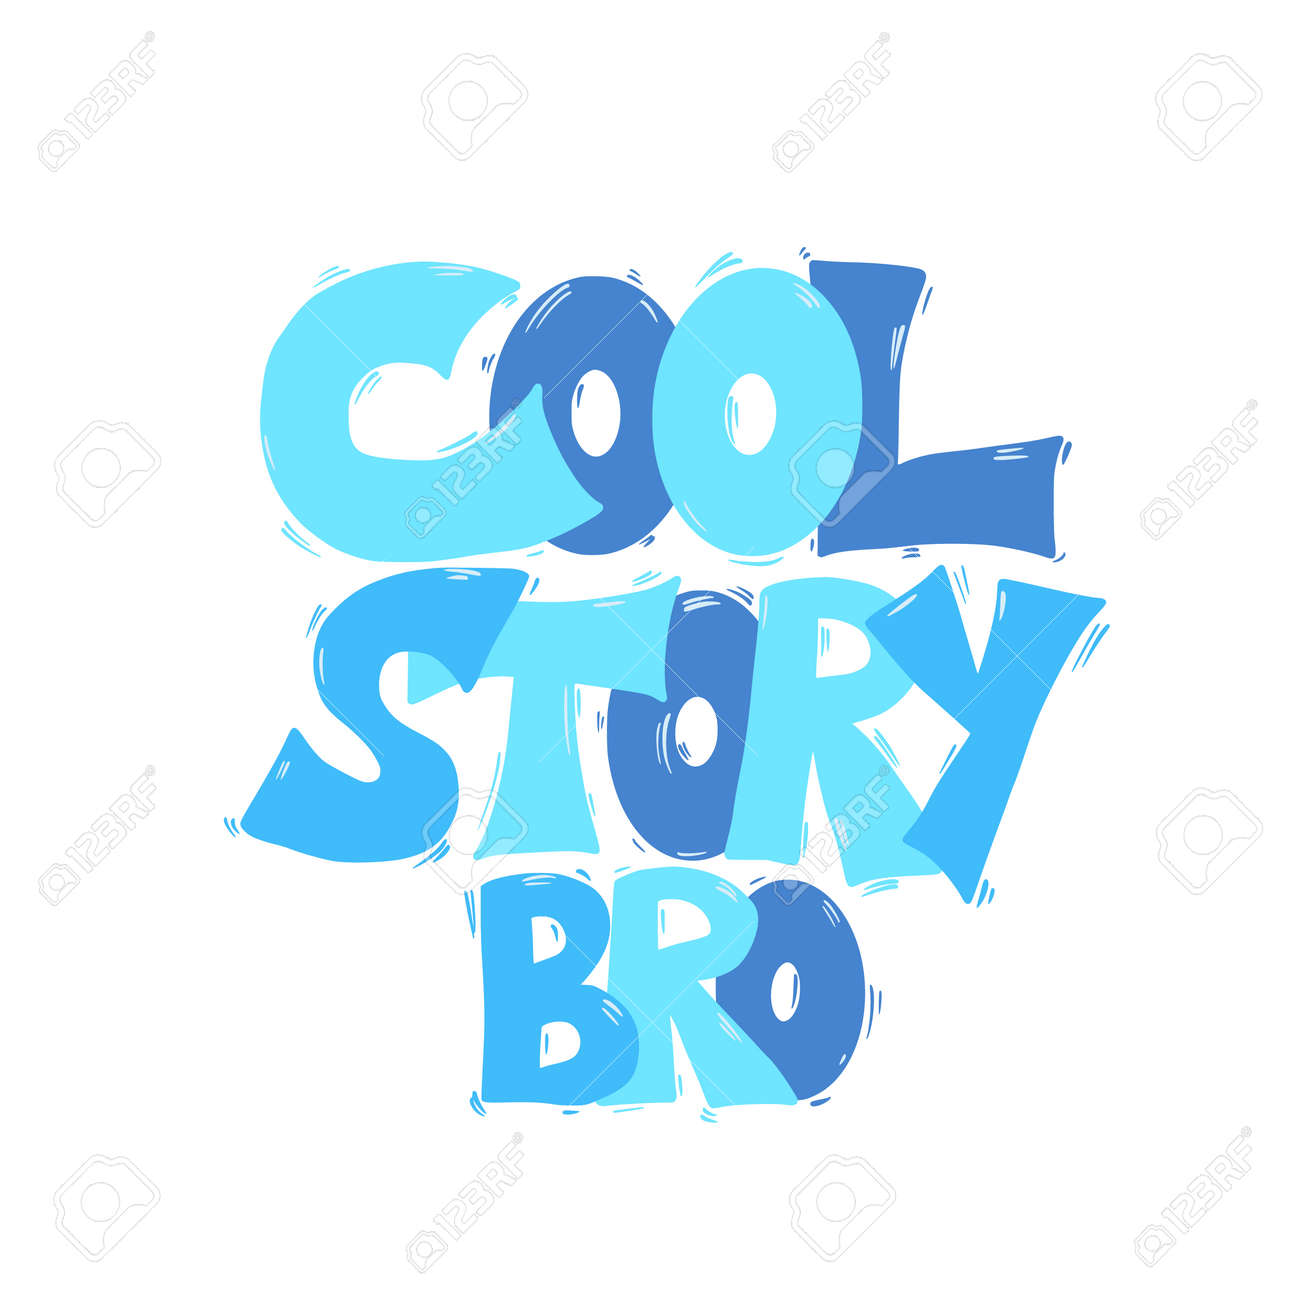 Cool story hand drawn text. Funny quote. Vector illustration. - 168652667